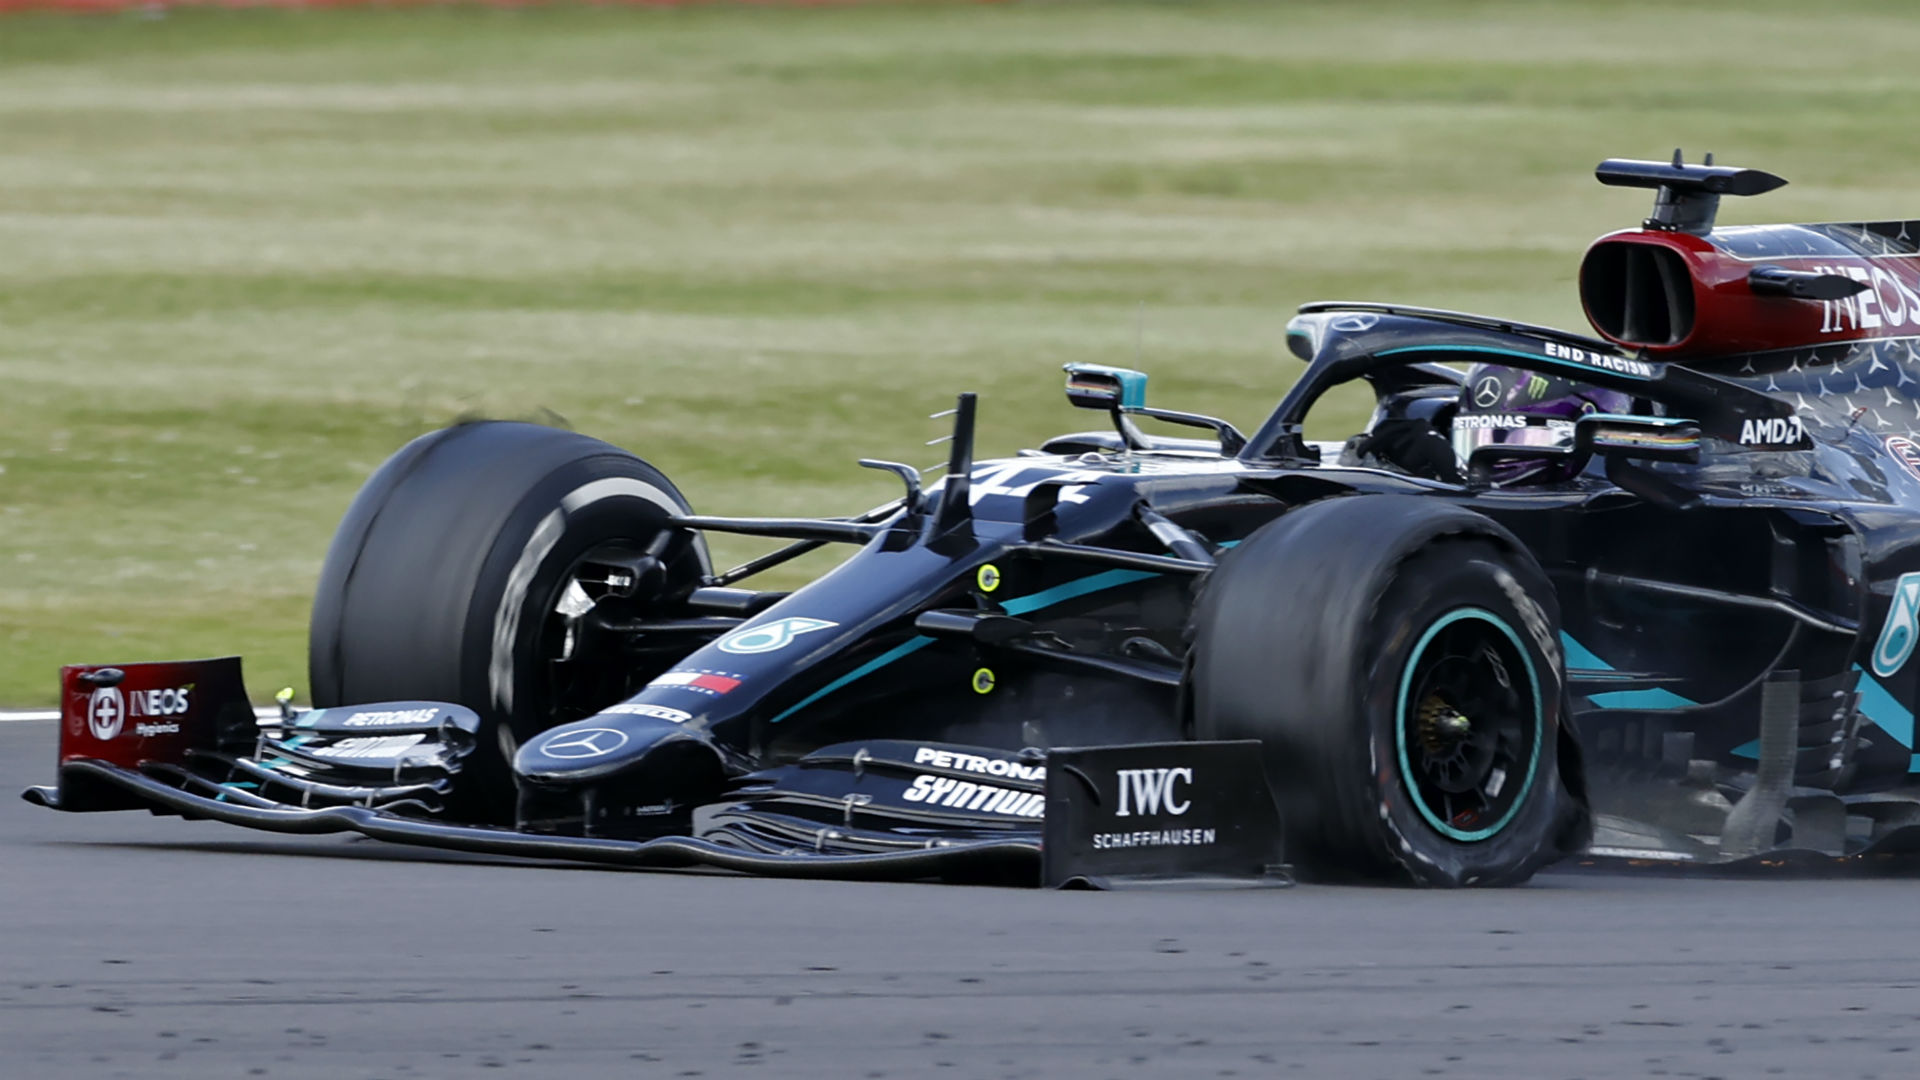 Formula 1 British Grand Prix results: Lewis Hamilton sets a record — with a flat tire